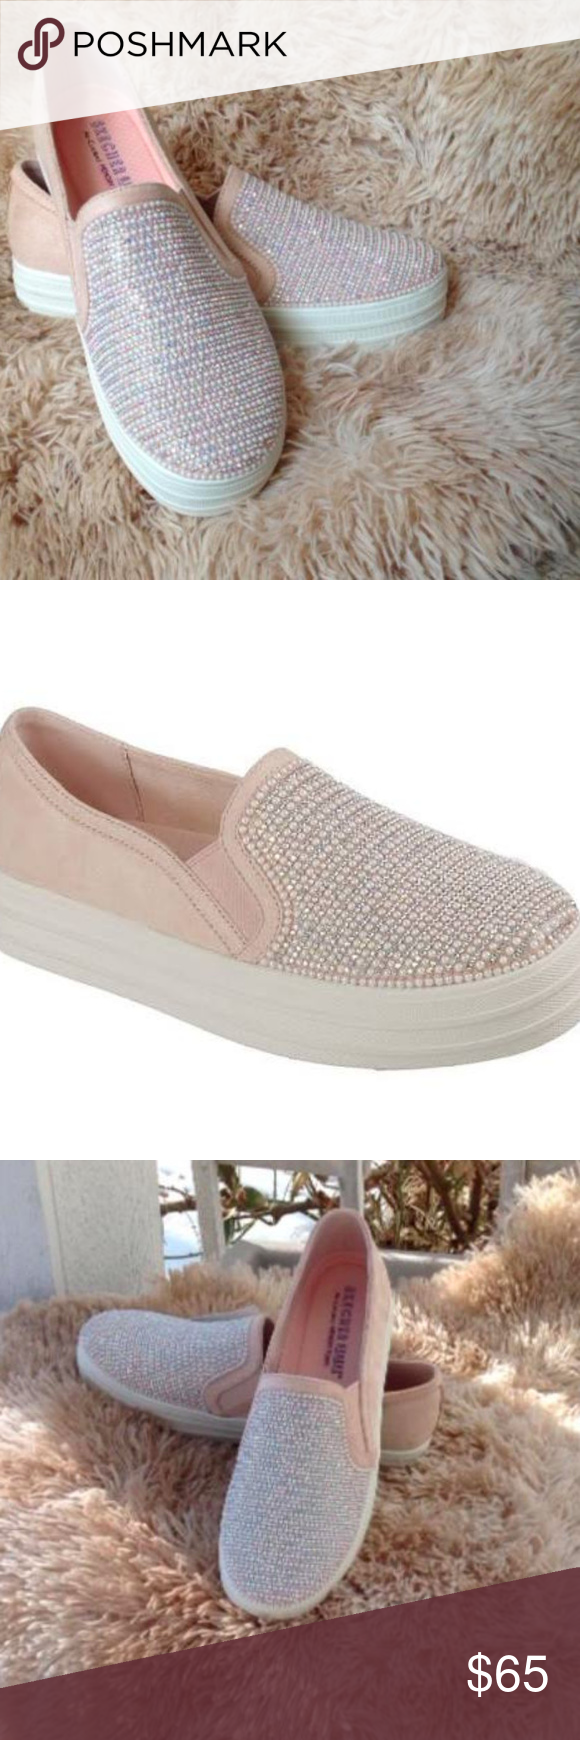 Skechers Double Up Shimmer Shaker Sneakers. Super cute and